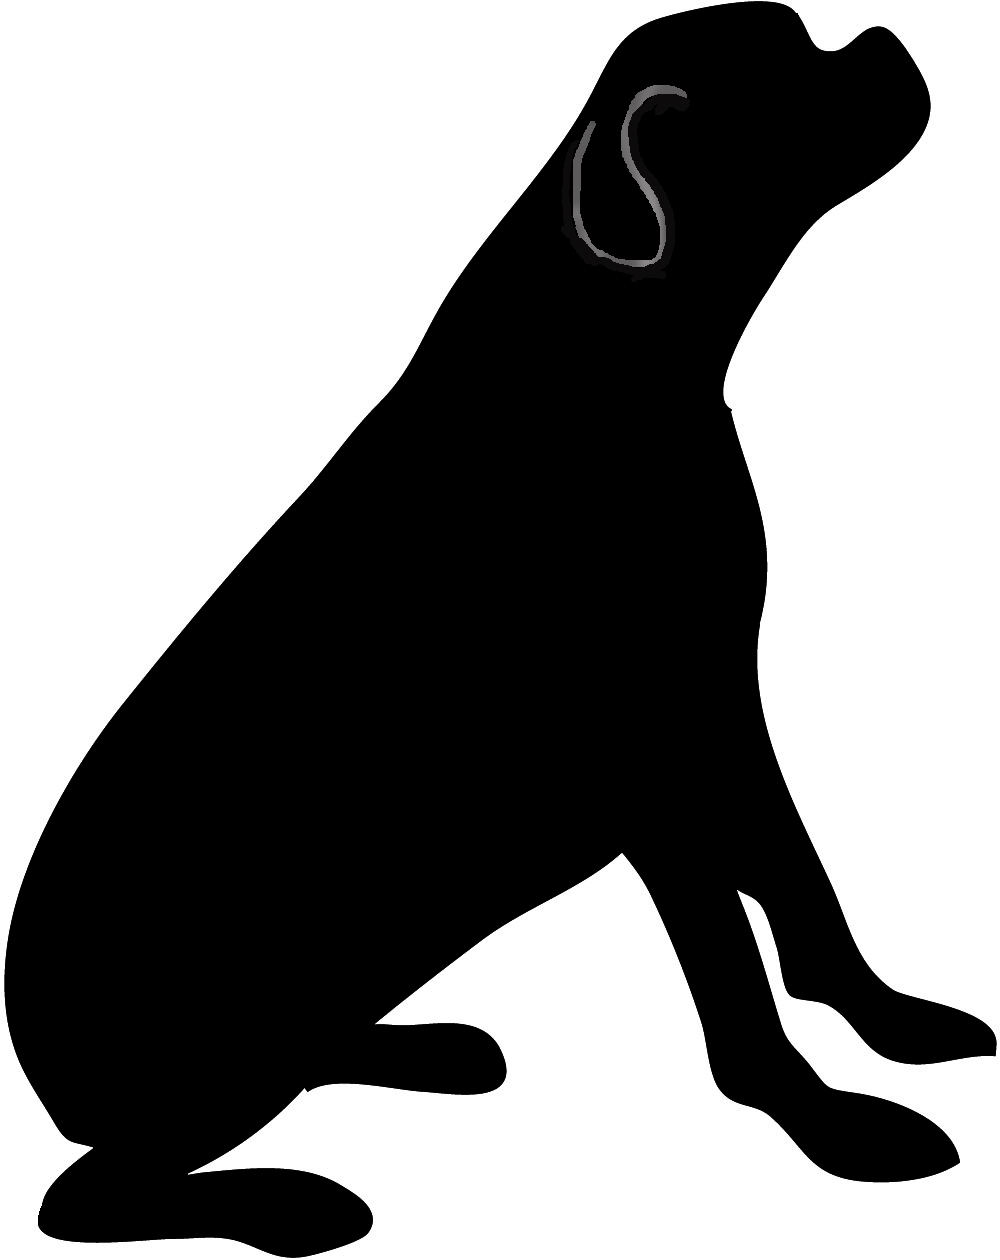 puppy silhouette happy small dog pet silhouette svg png icon free download silhouette puppy